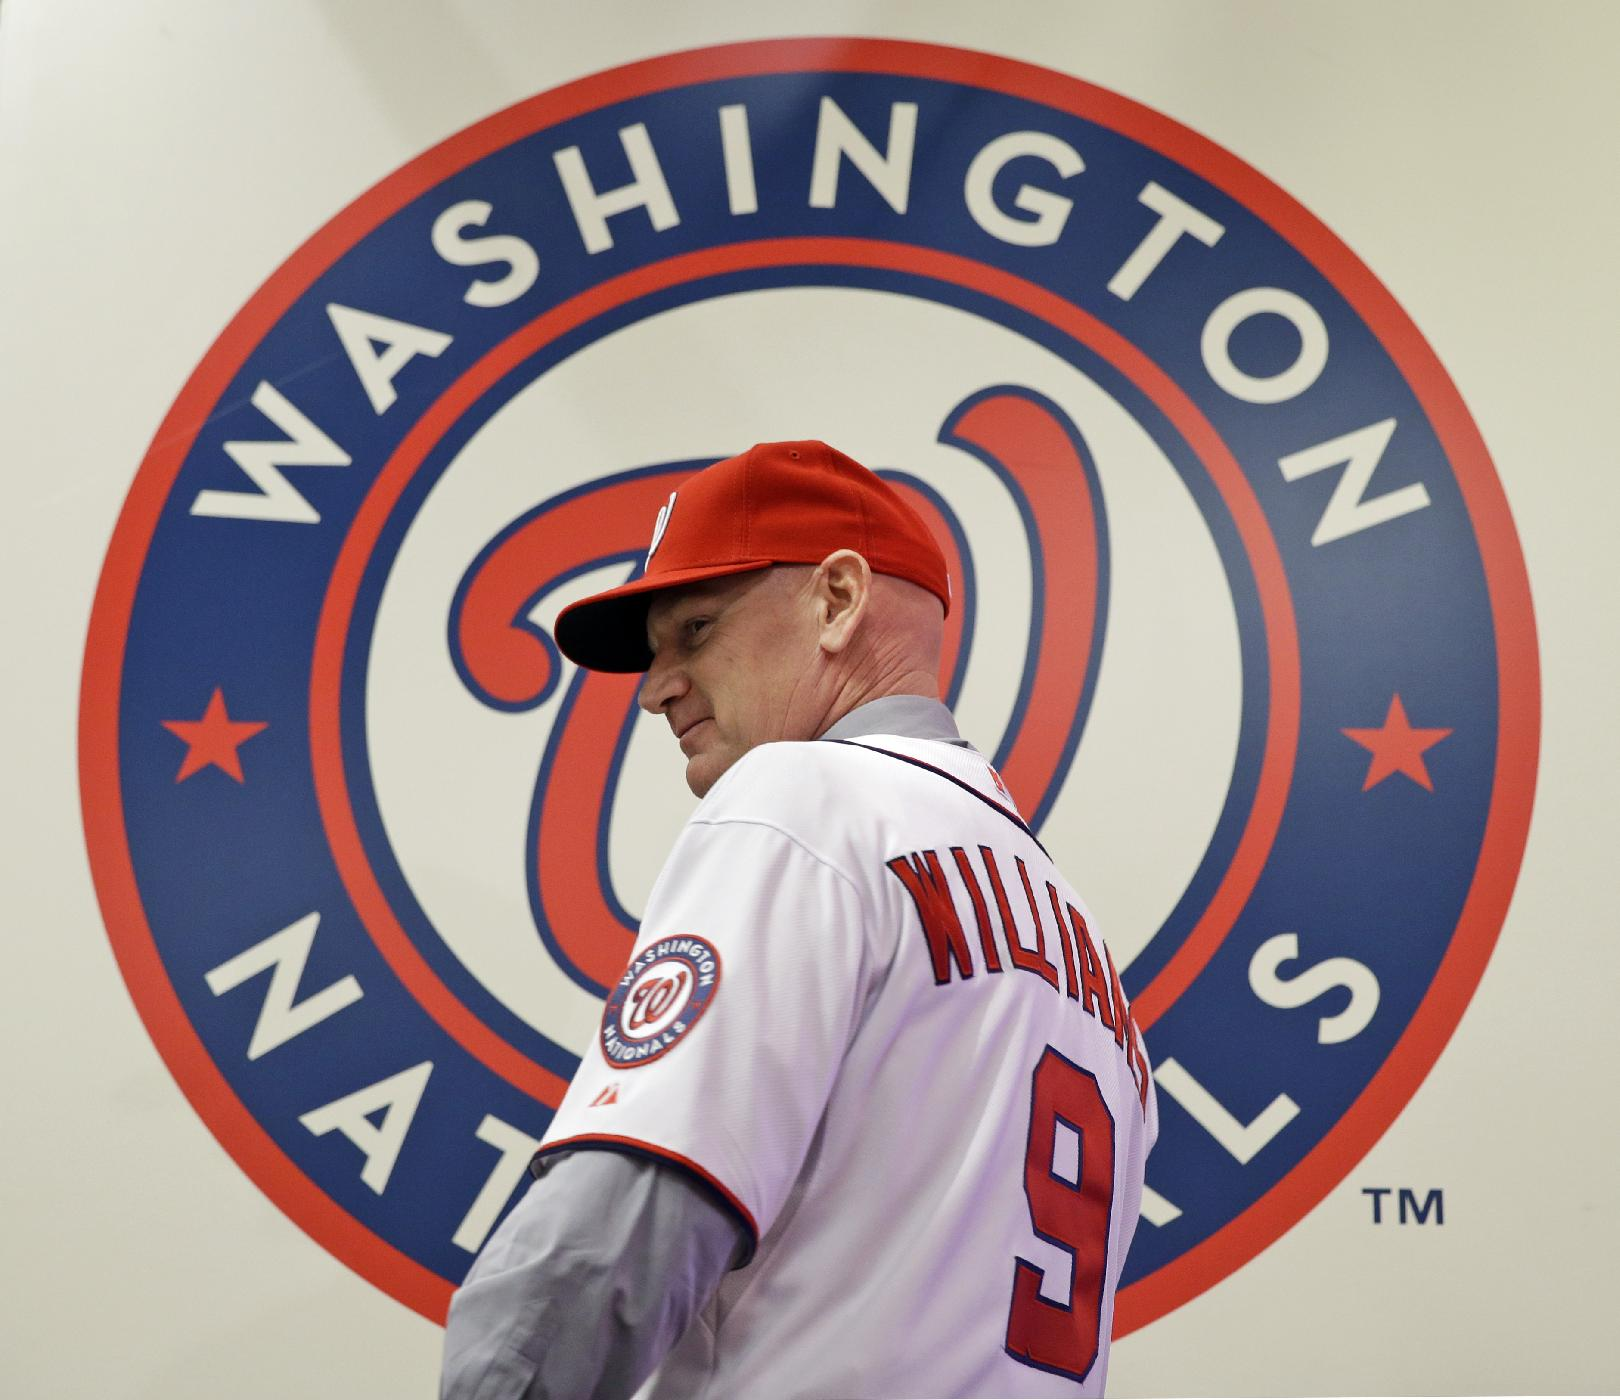 Matt Williams turns after showing the back of his newly-donned jersey, after he is introduced as the new manager of the Washington Nationals baseball team, during a news conference at Nationals Park, Friday, Nov. 1, 2013, in Washington